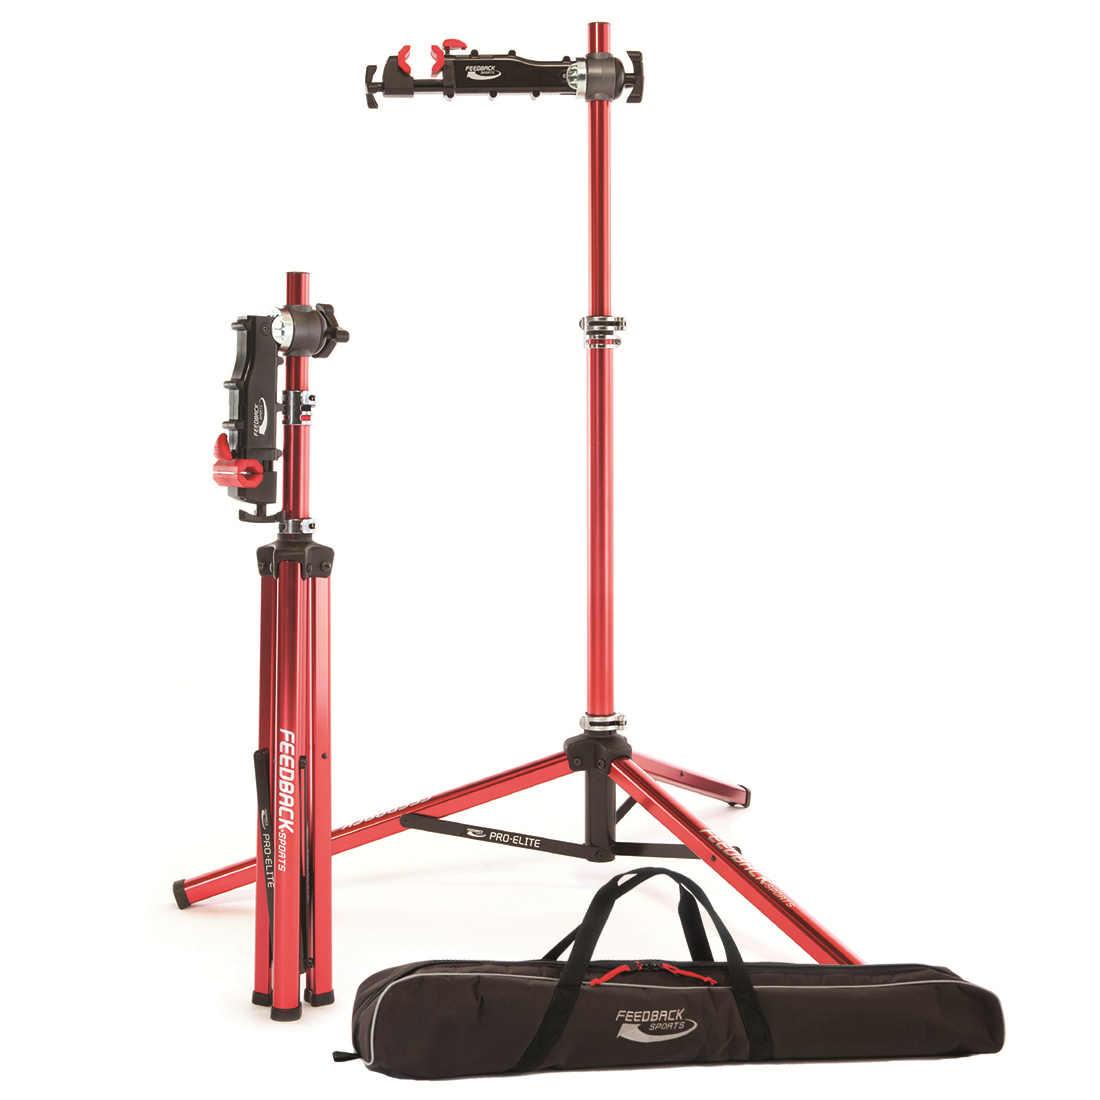 Bicycle Wash And Work Stands From Feedback Sports Are